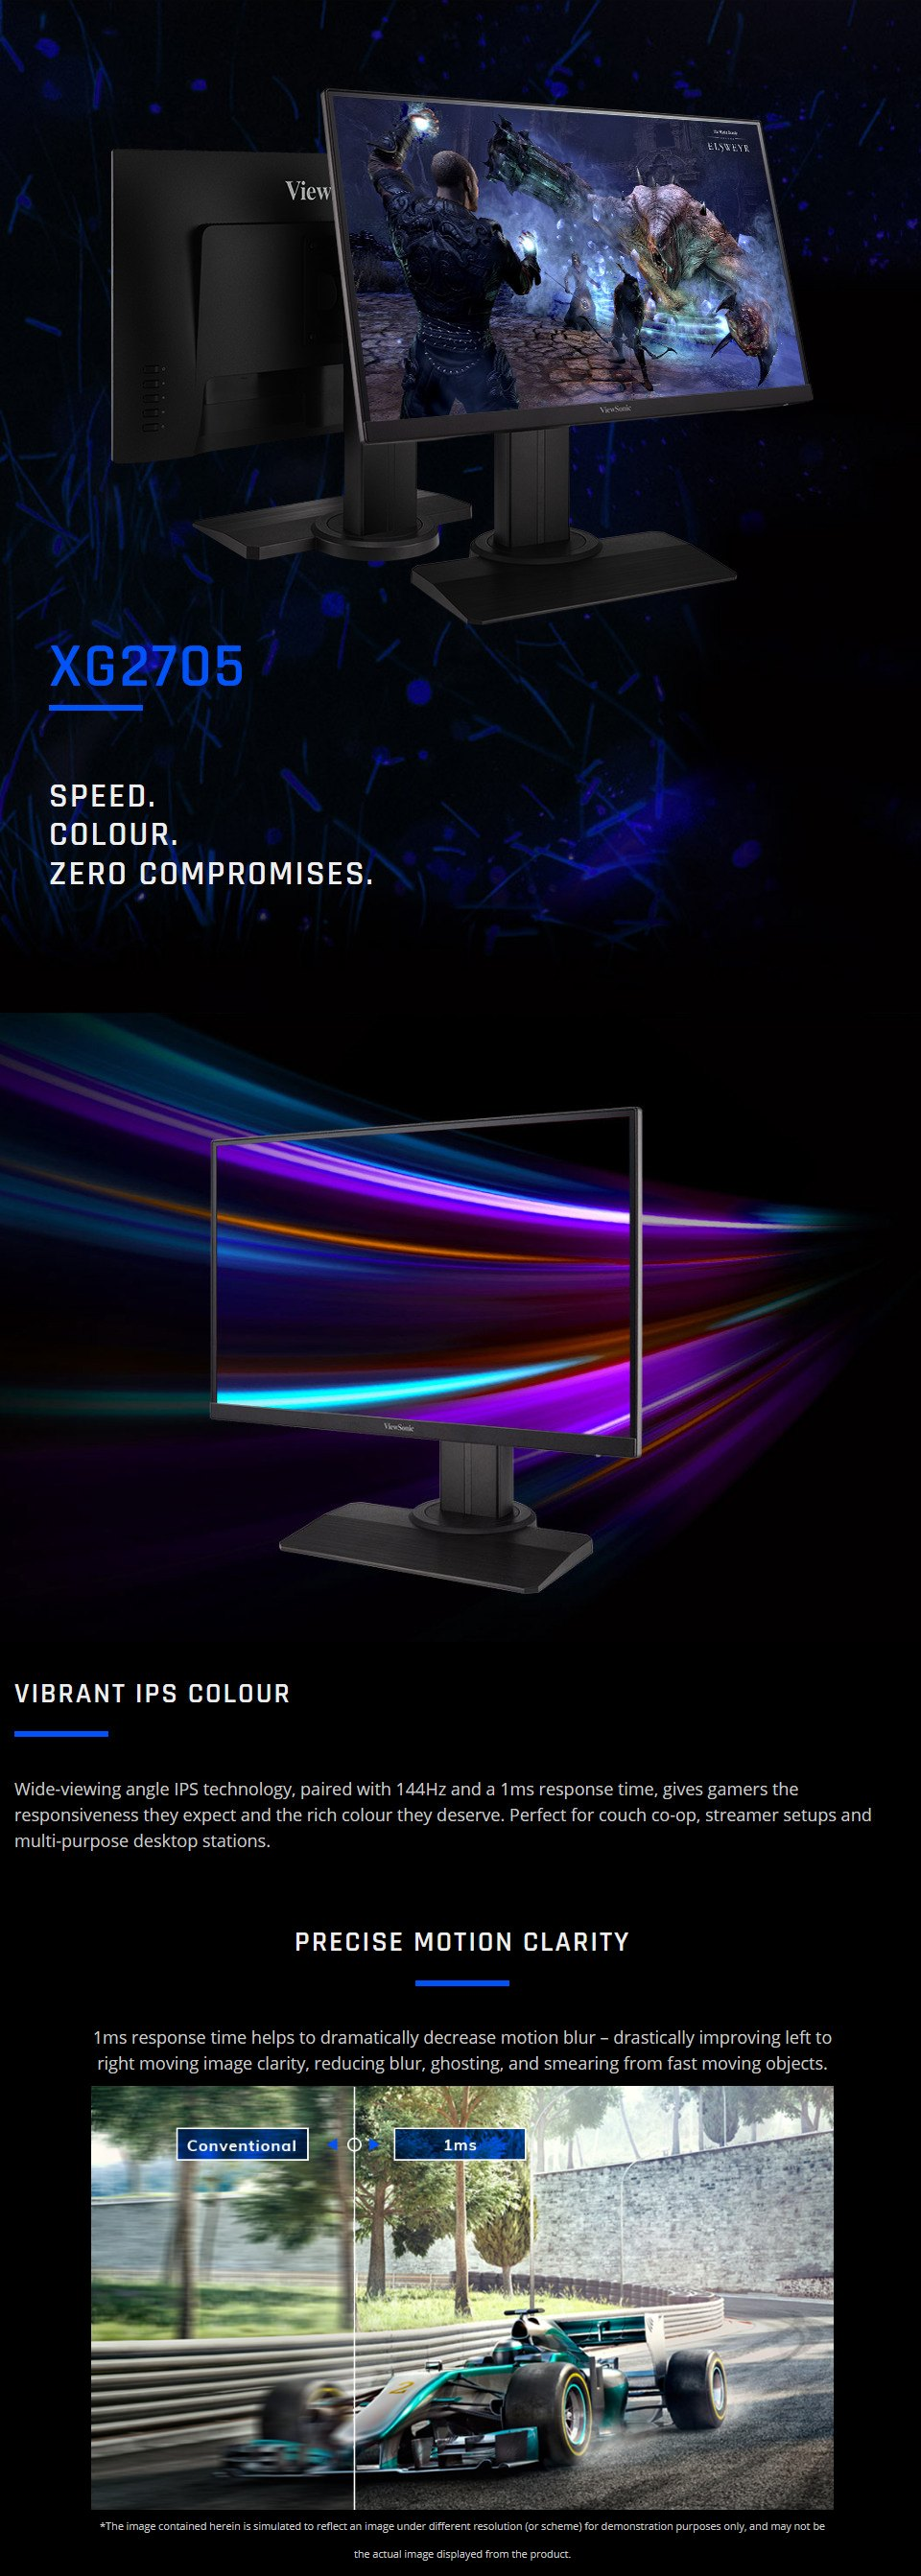 ViewSonic XG2705 FHD 144Hz IPS FreeSync 27in Monitor features